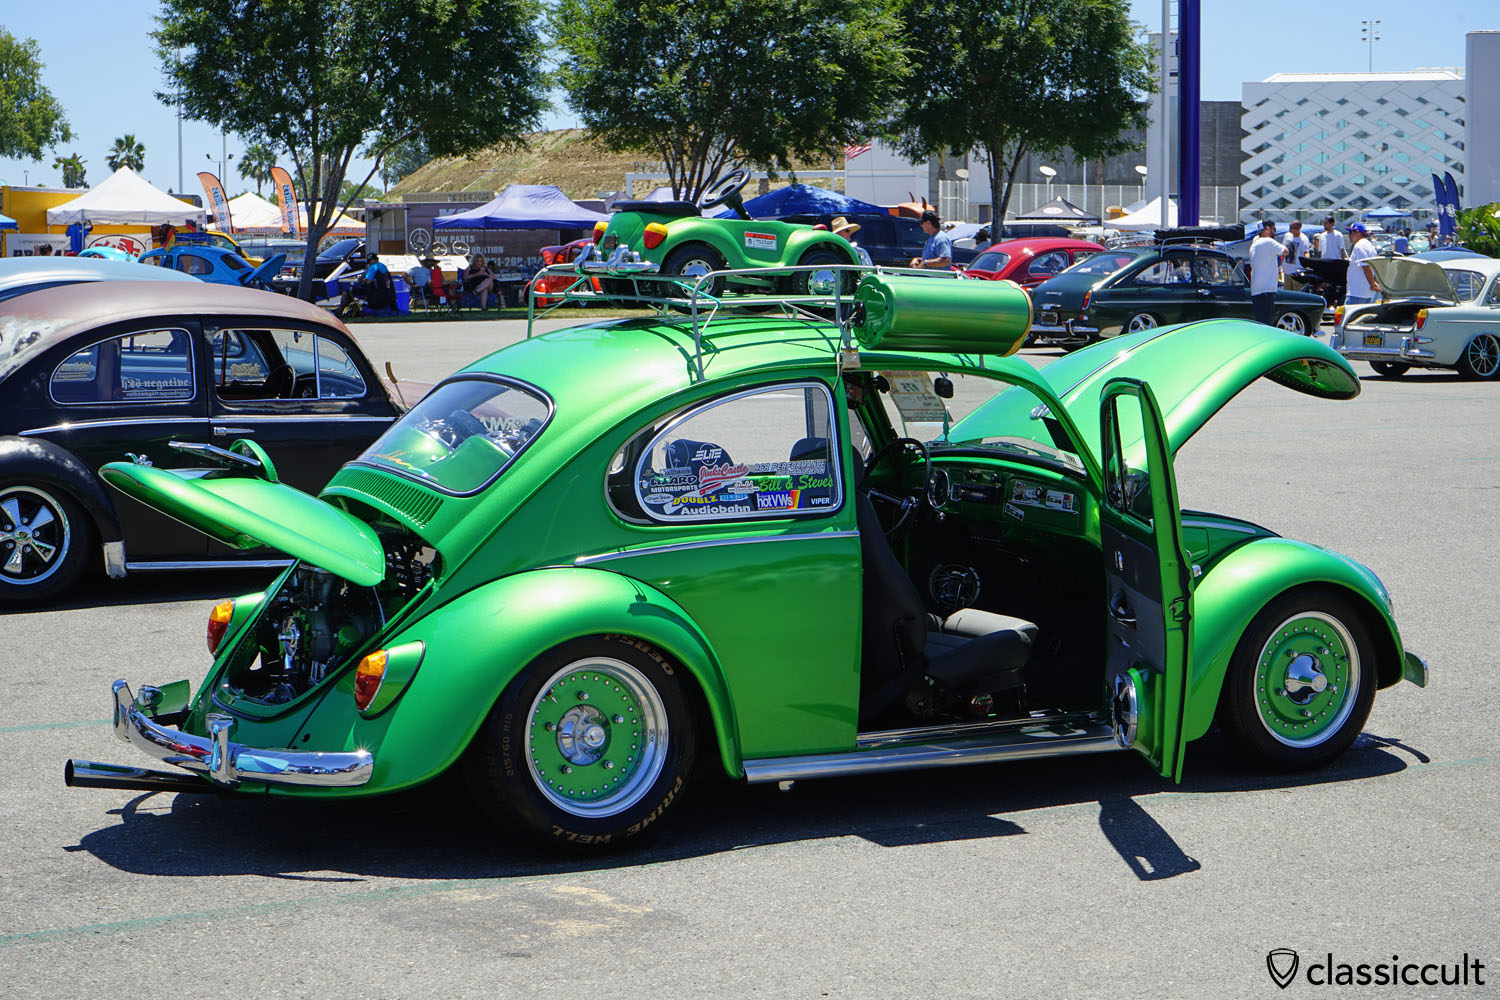 The Classic VW Show Costa Mesa CA Classiccult - Vw car show this weekend